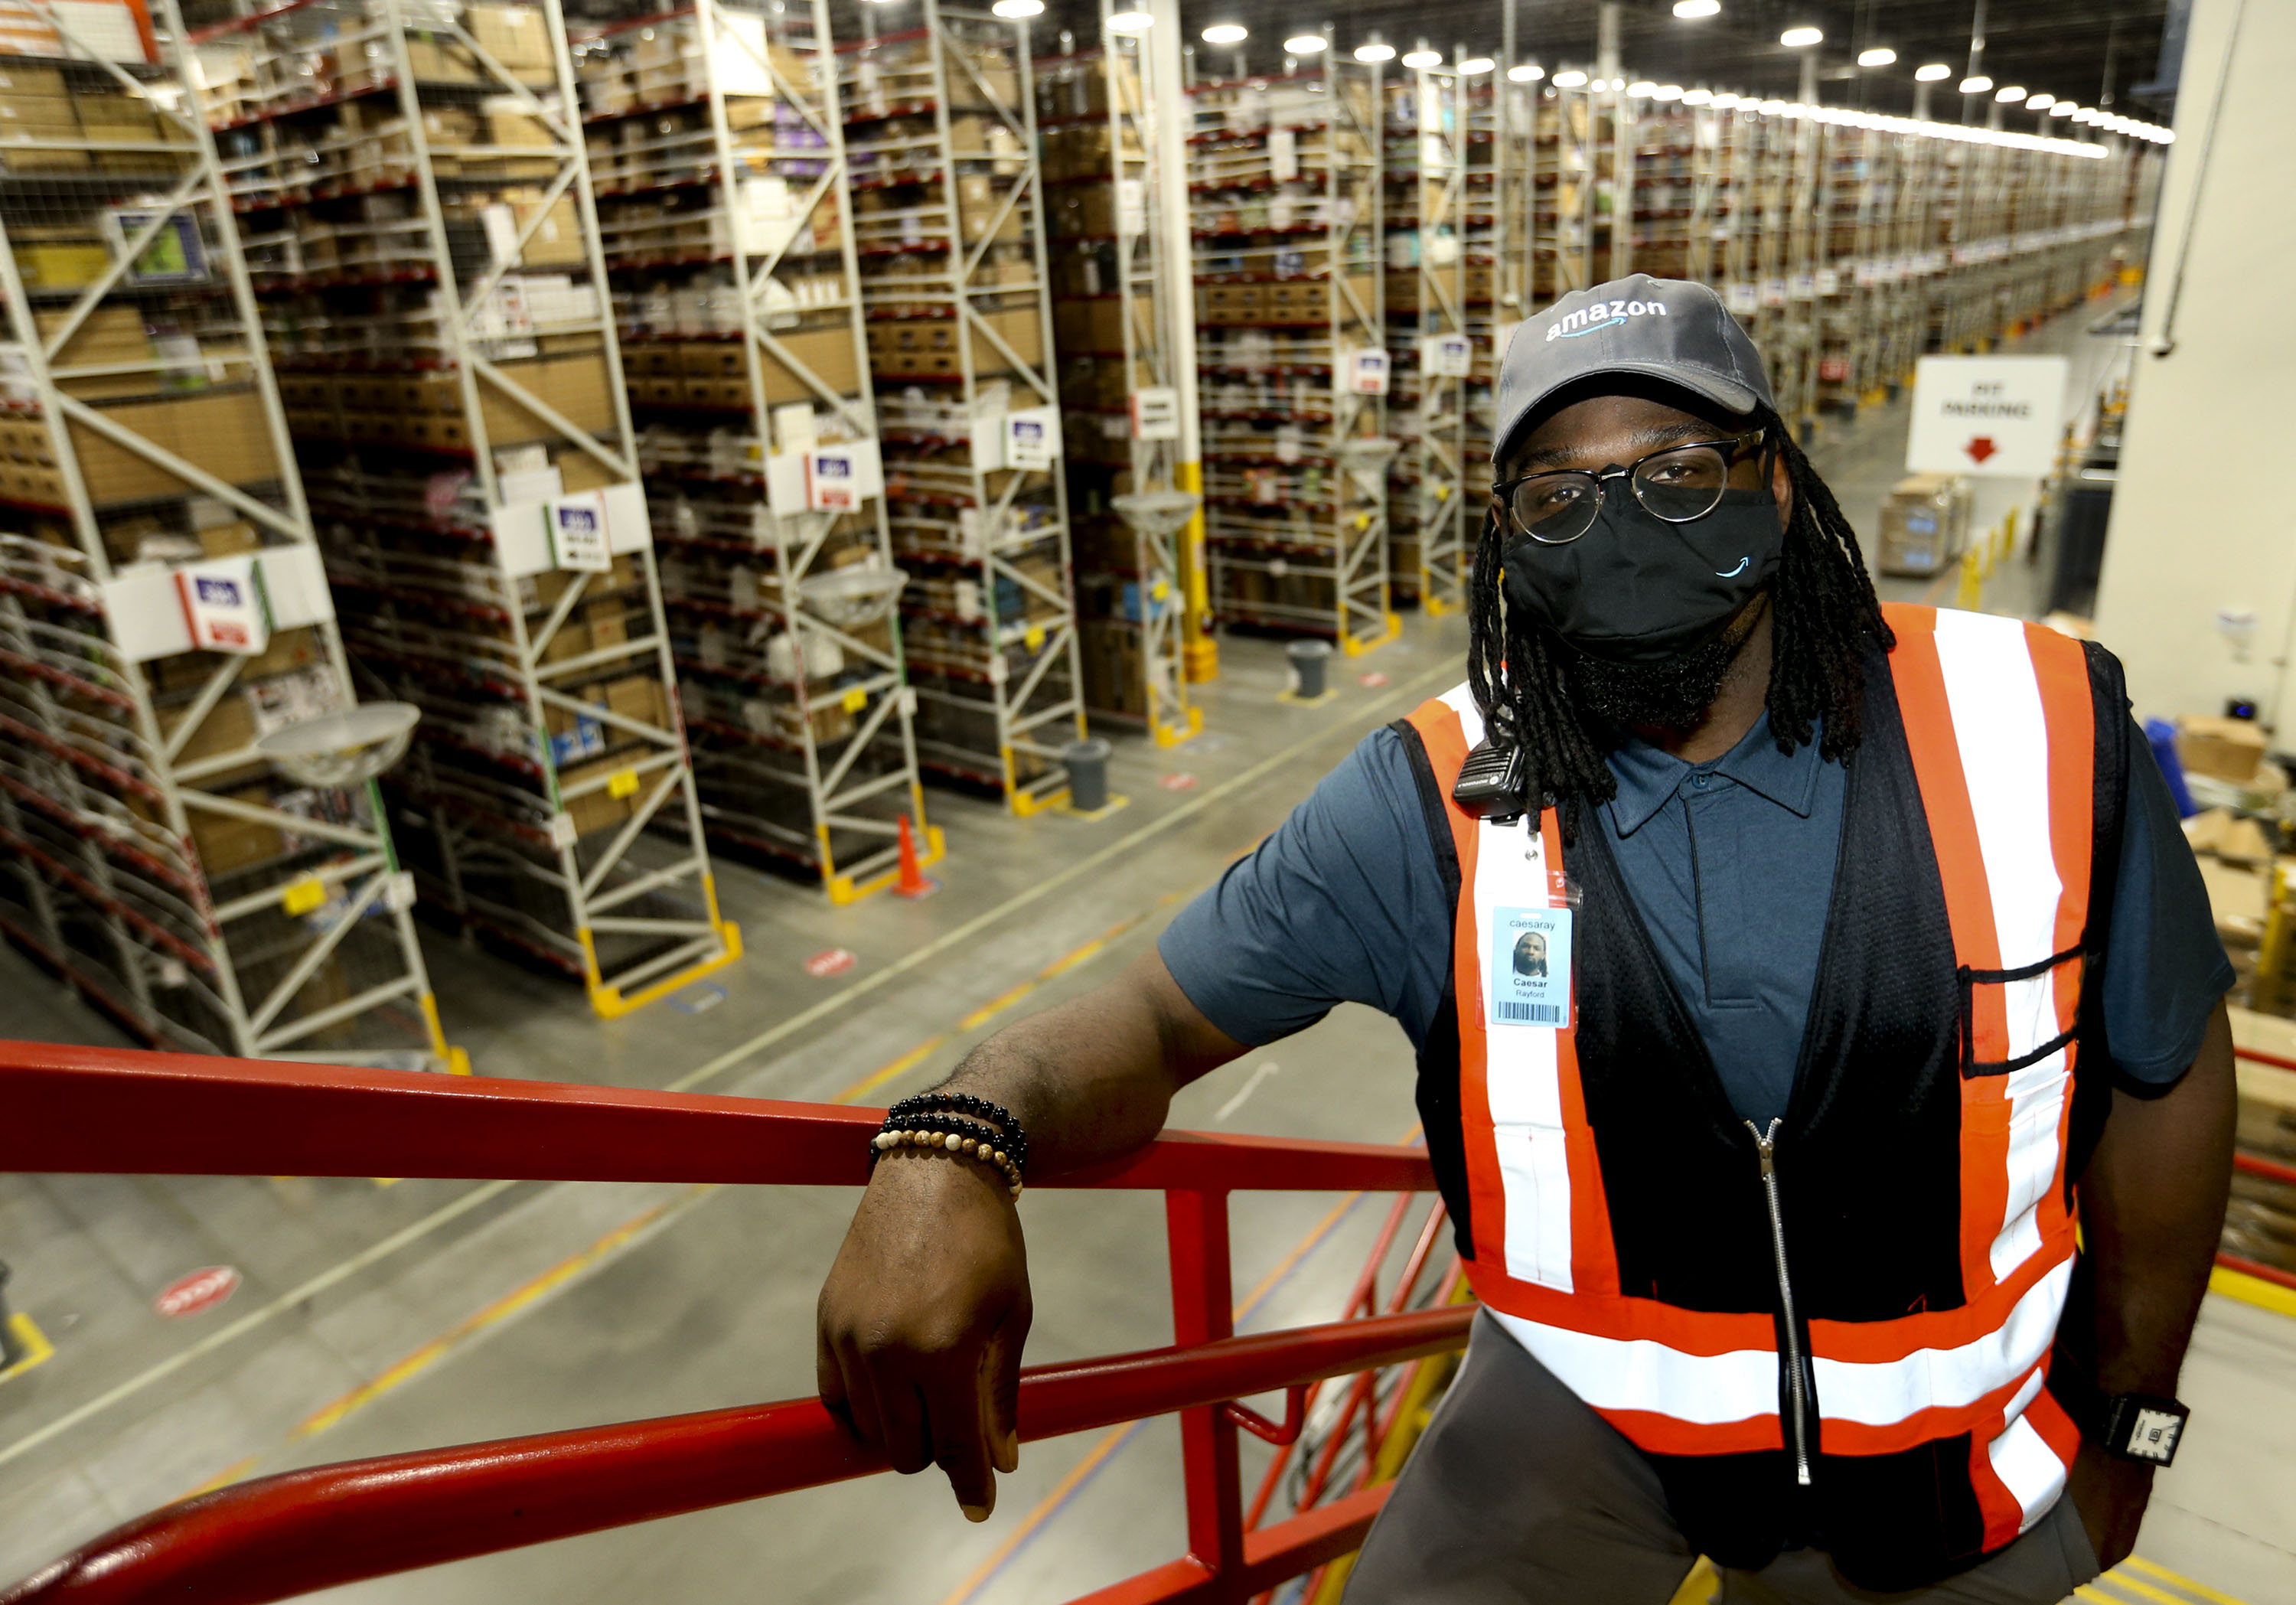 Caesar Rayford is photographed at the Amazon fulfillment center in South Jordan on Thursday, May 20, 2021.